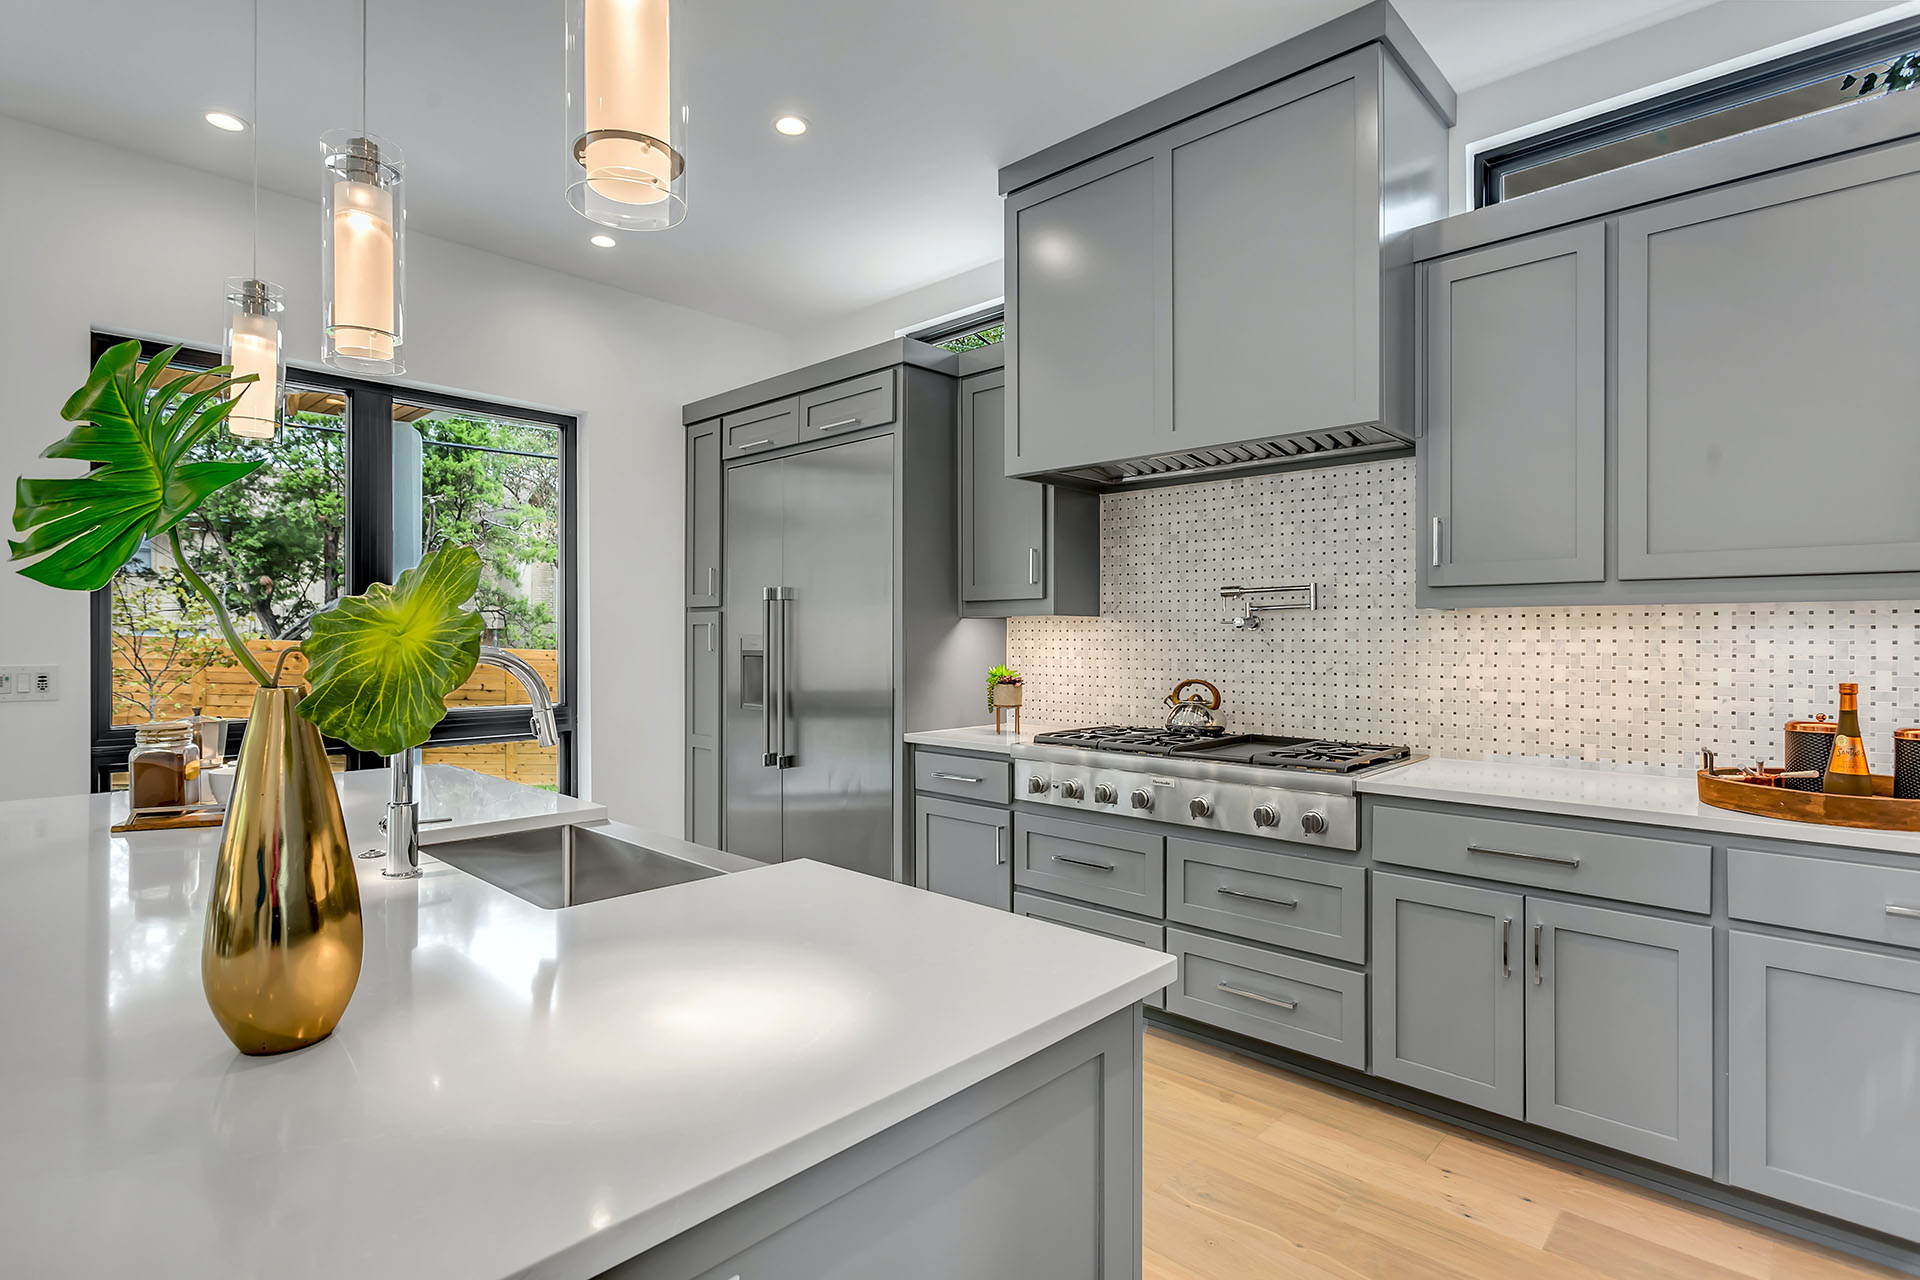 What Is the First Thing to Do When Remodeling a Kitchen